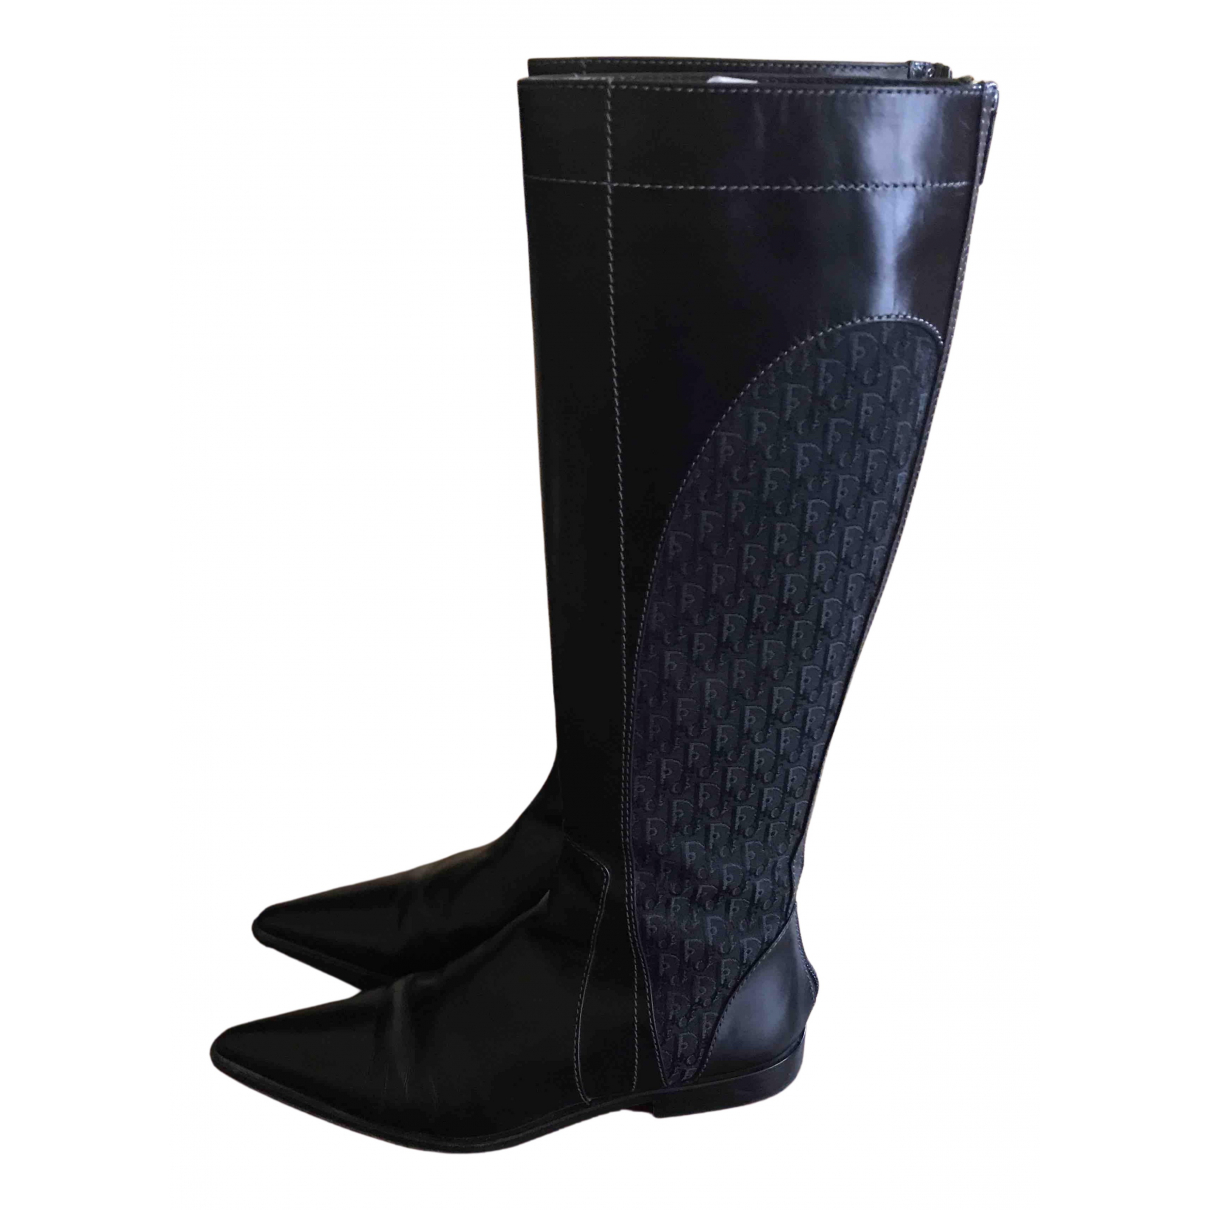 Dior N Black Leather Boots for Women 35 IT